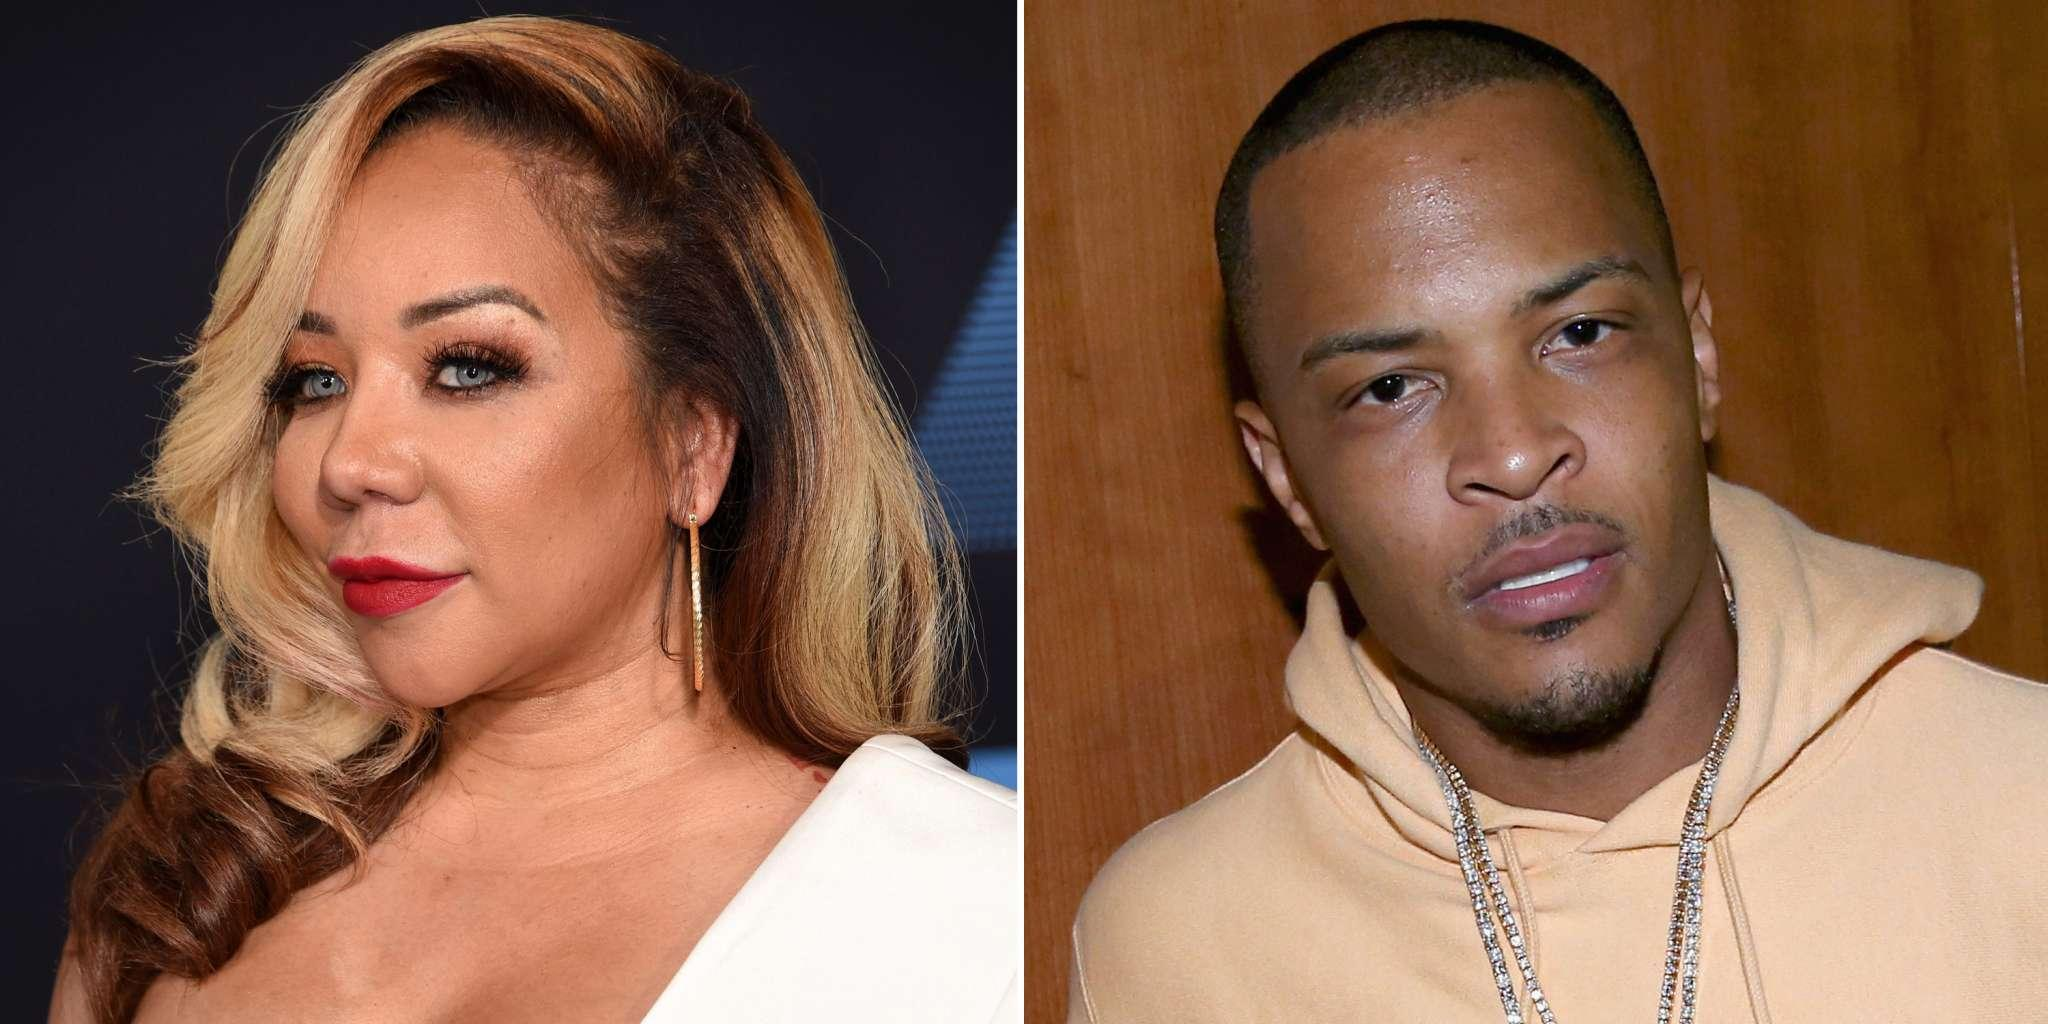 T.I. Is Surrounded By Gorgeous Women - What Does Tiny Harris Have To Say About This? - See The Photo